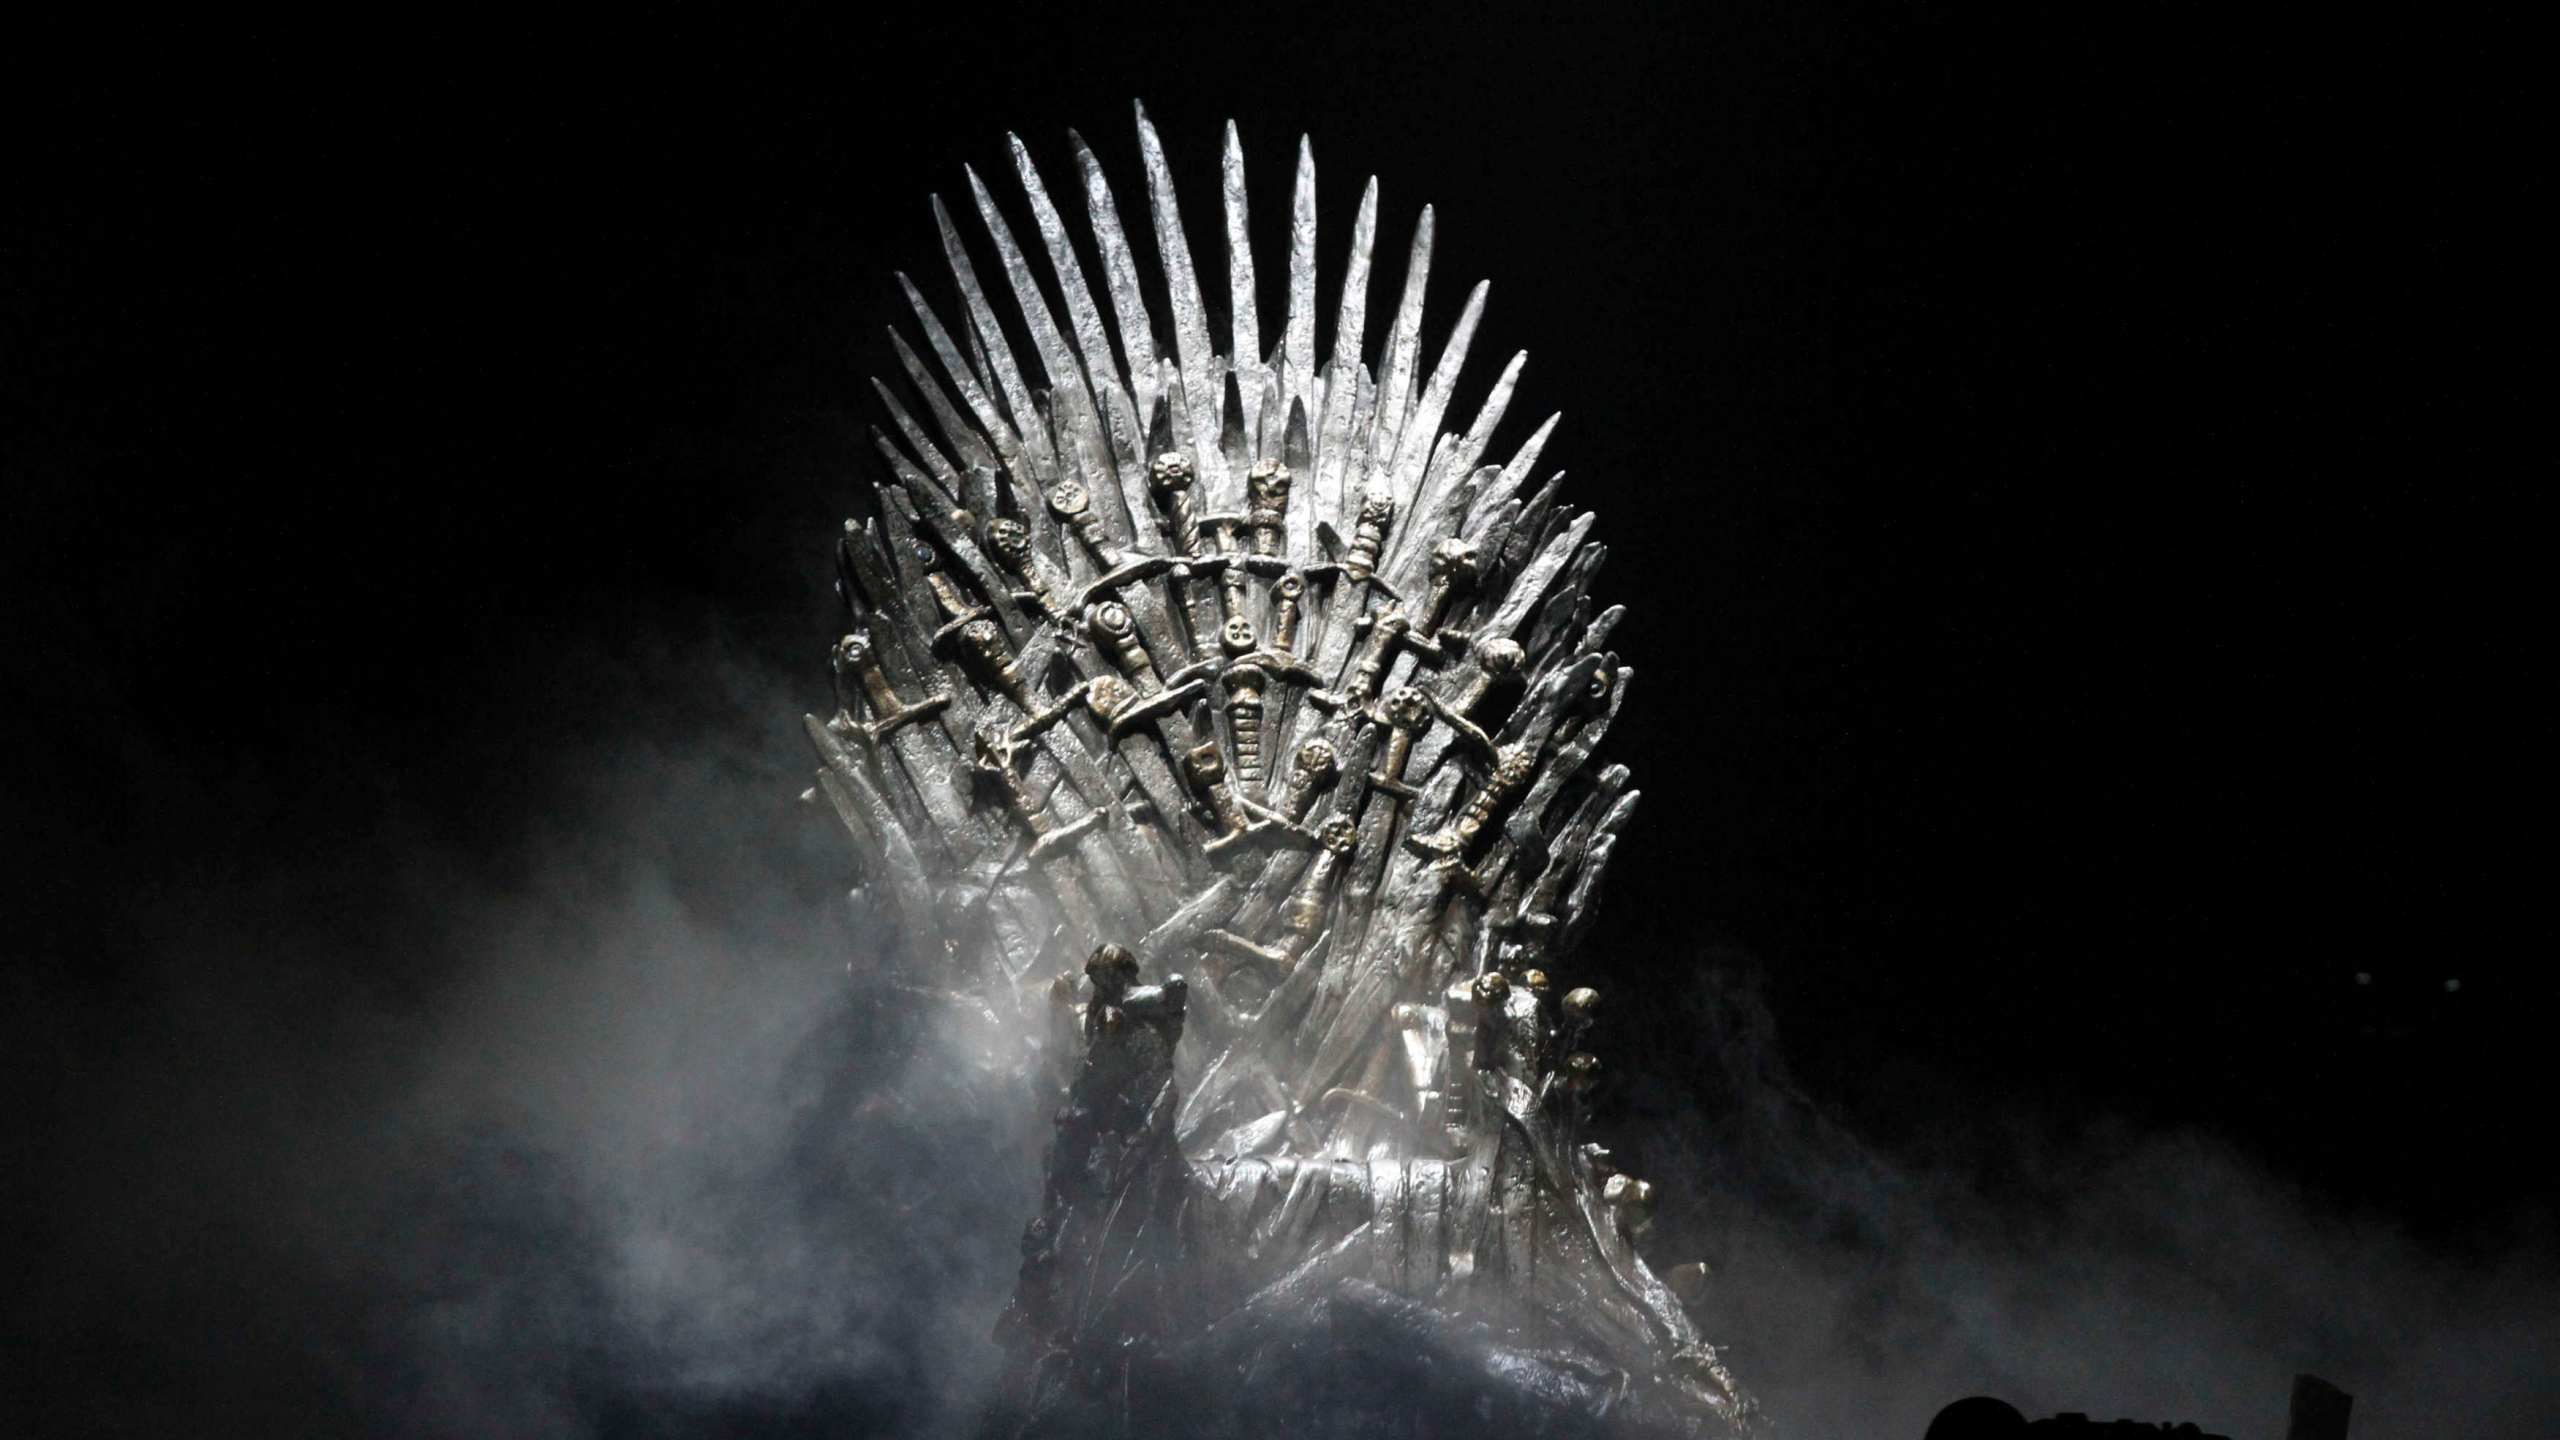 Game Of Thrones Live Concert Experience Coming To Amalie Arena